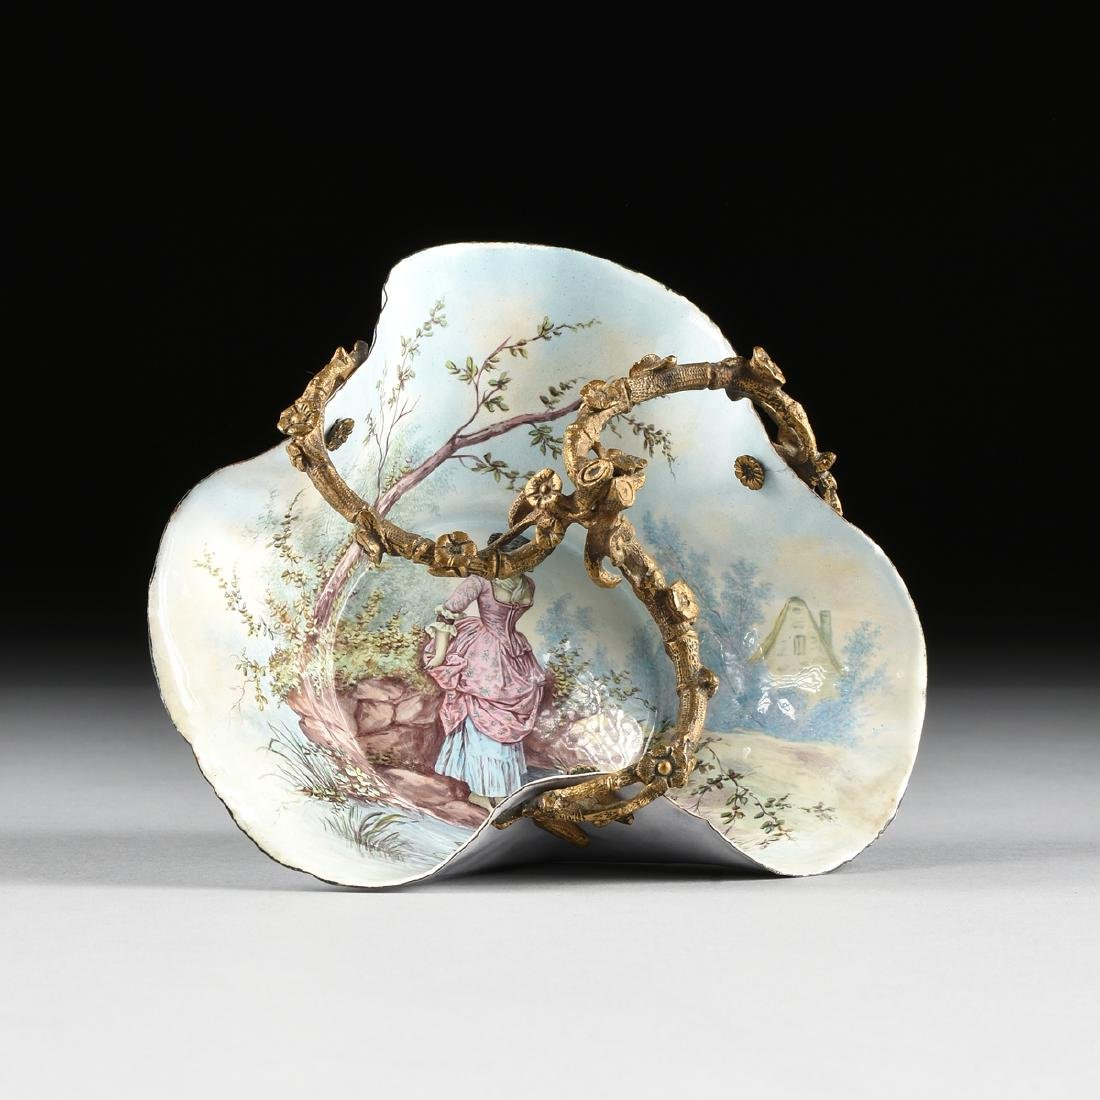 A FRENCH GILT BRONZE MOUNTED AND PAINTED ENAMEL BOWL,